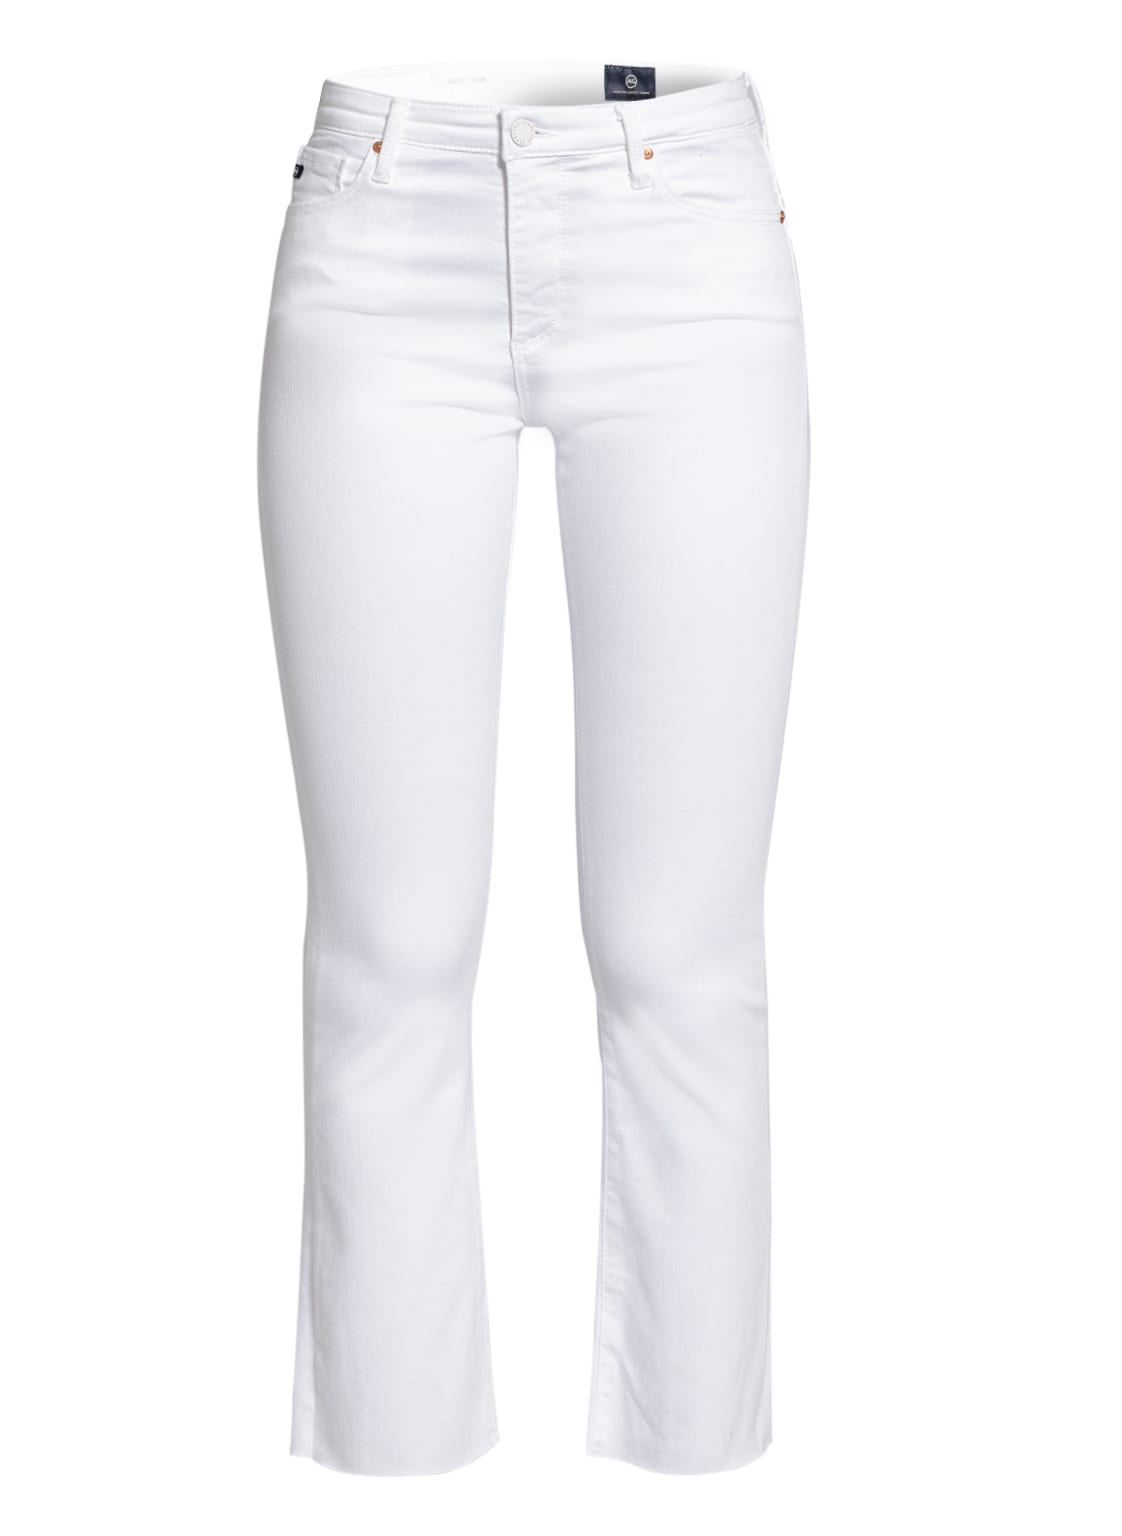 Image of Ag Jeans 7/8-Jeans The Jodi Crop weiss